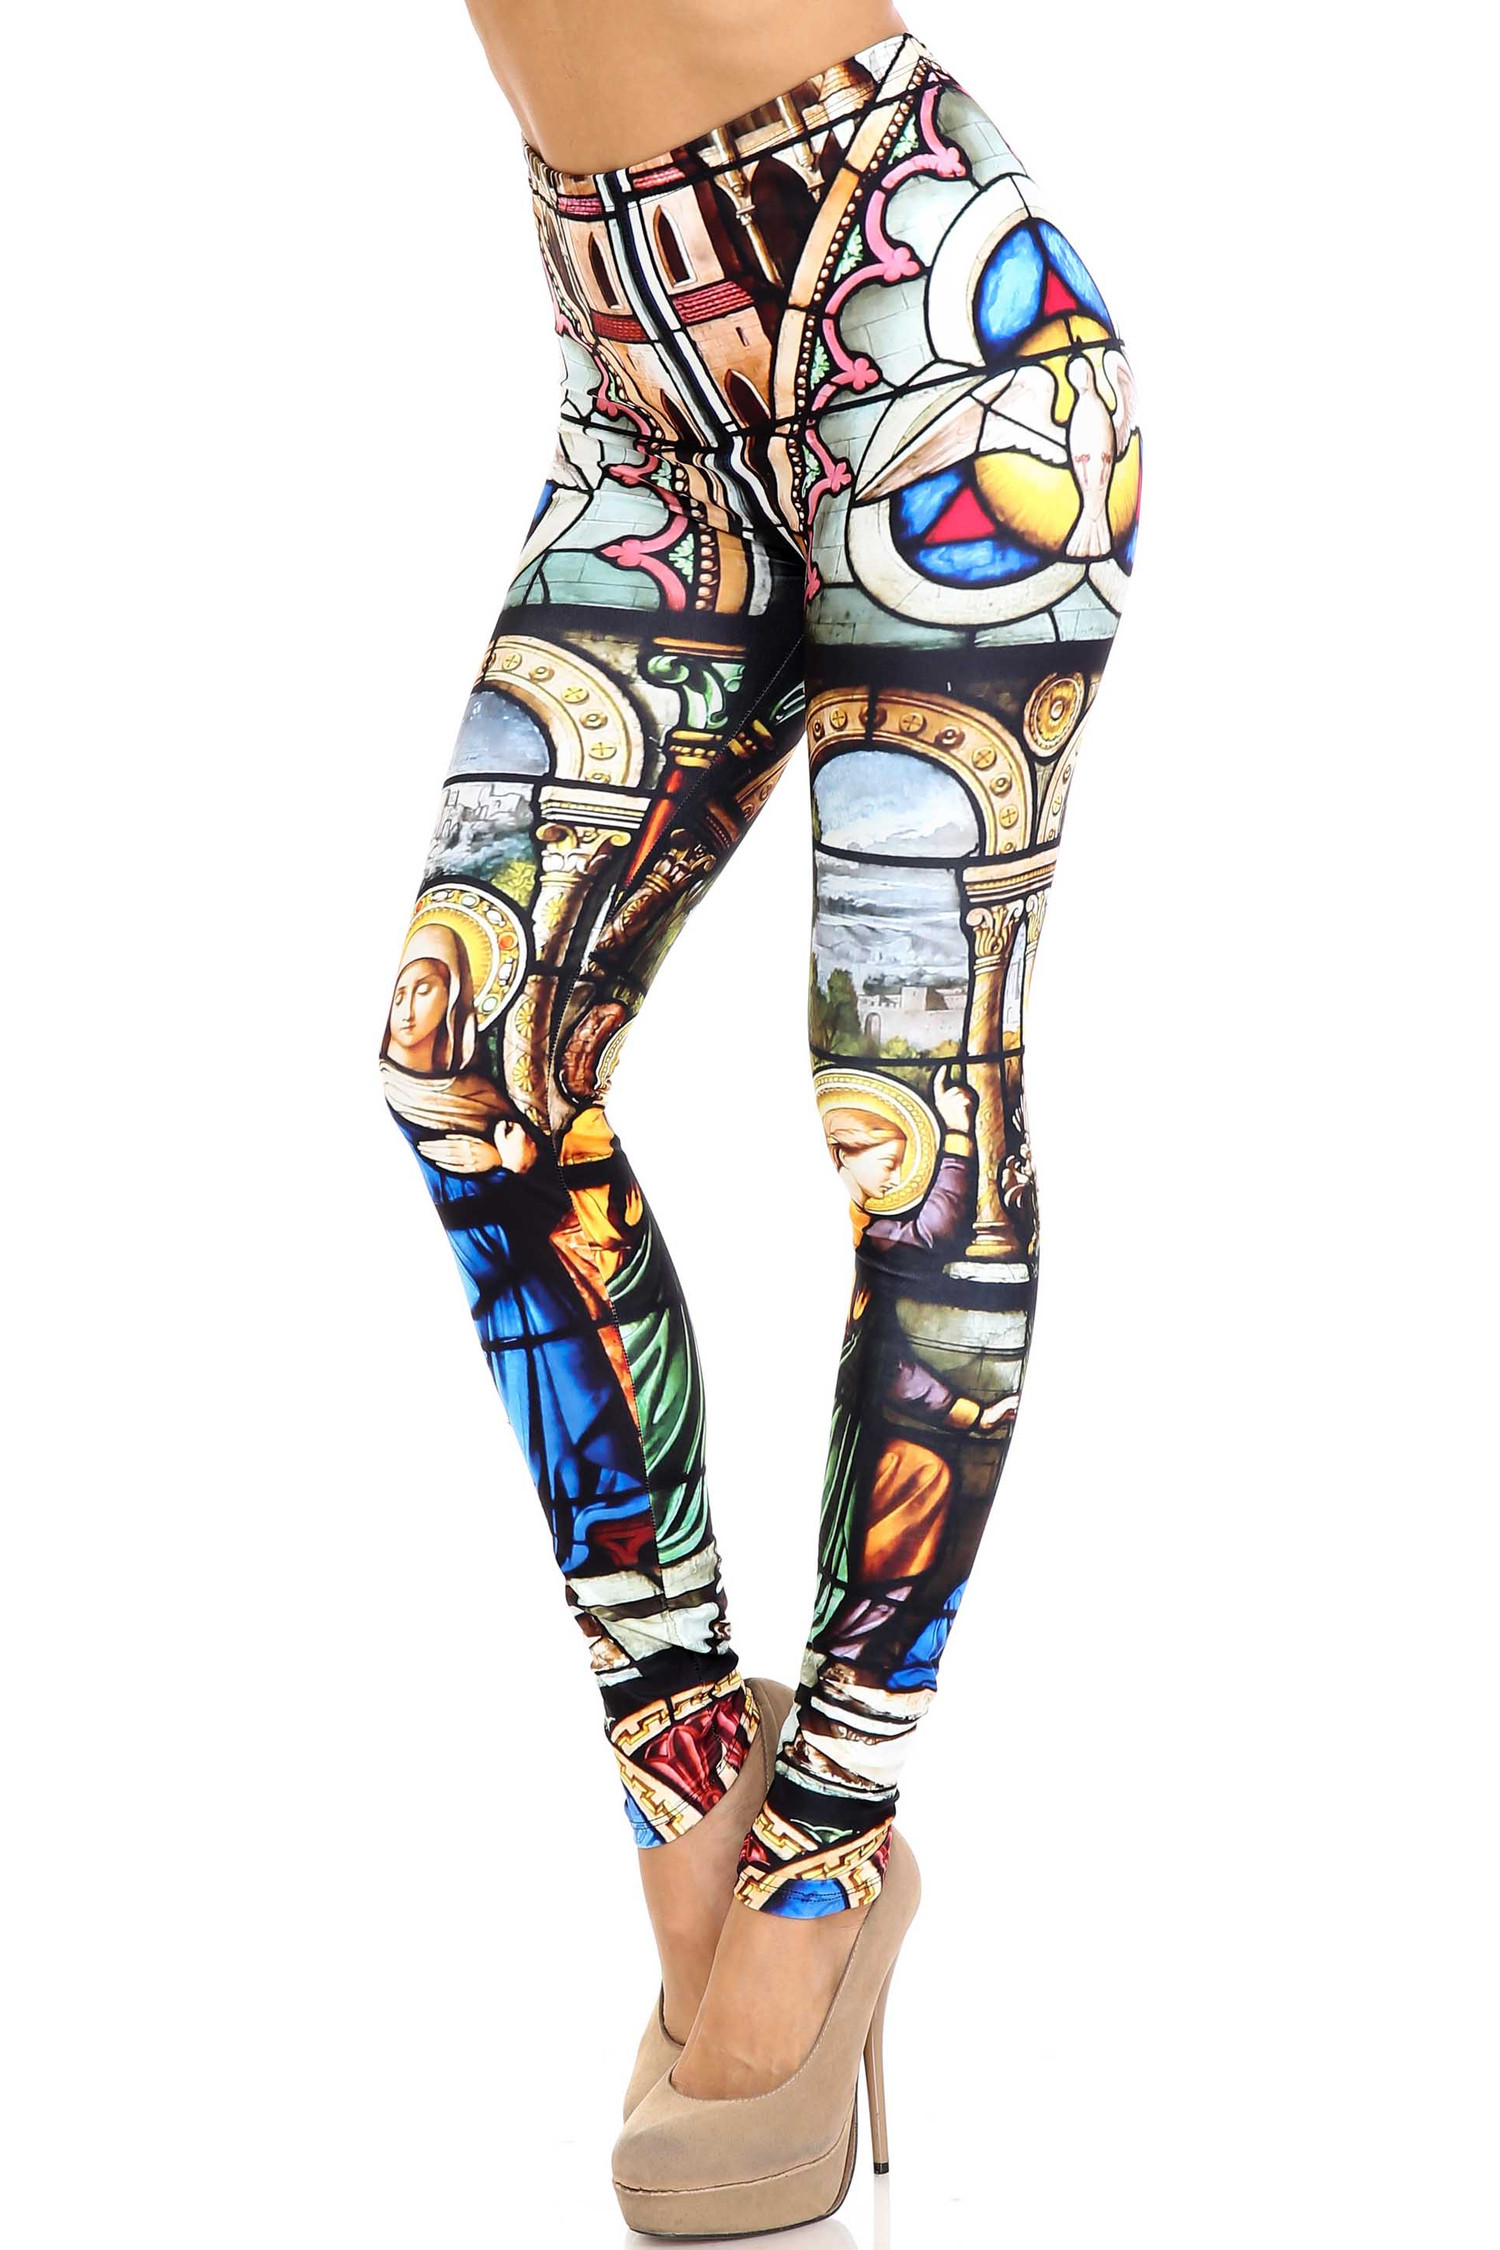 Creamy Soft Stained Glass Cathedral Leggings - USA Fashion™